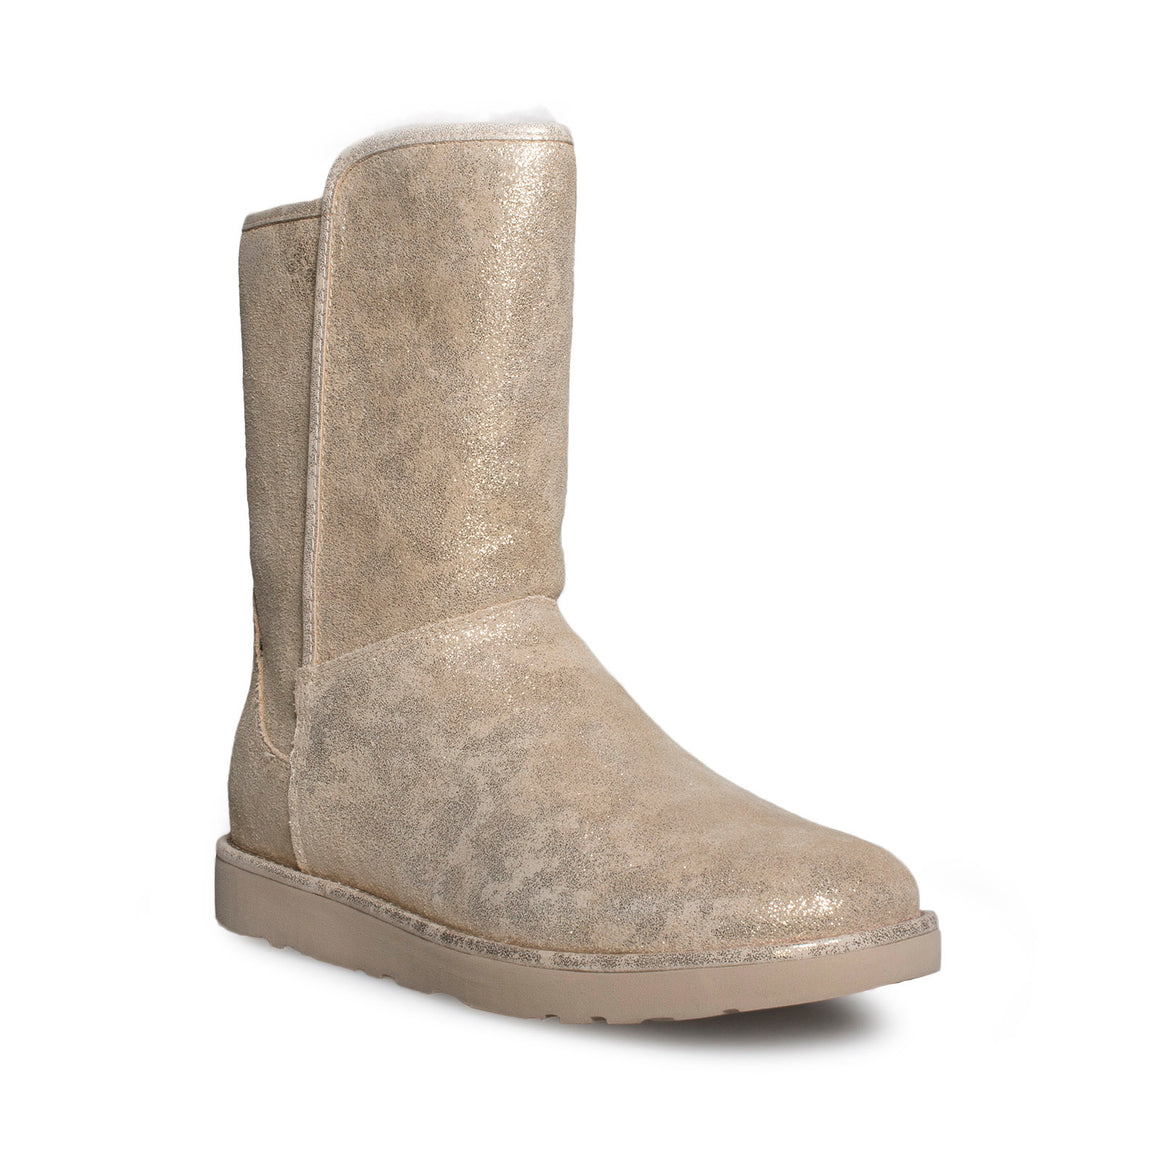 UGG Abree Short II Stardust Metallic Gold Boots - Women's